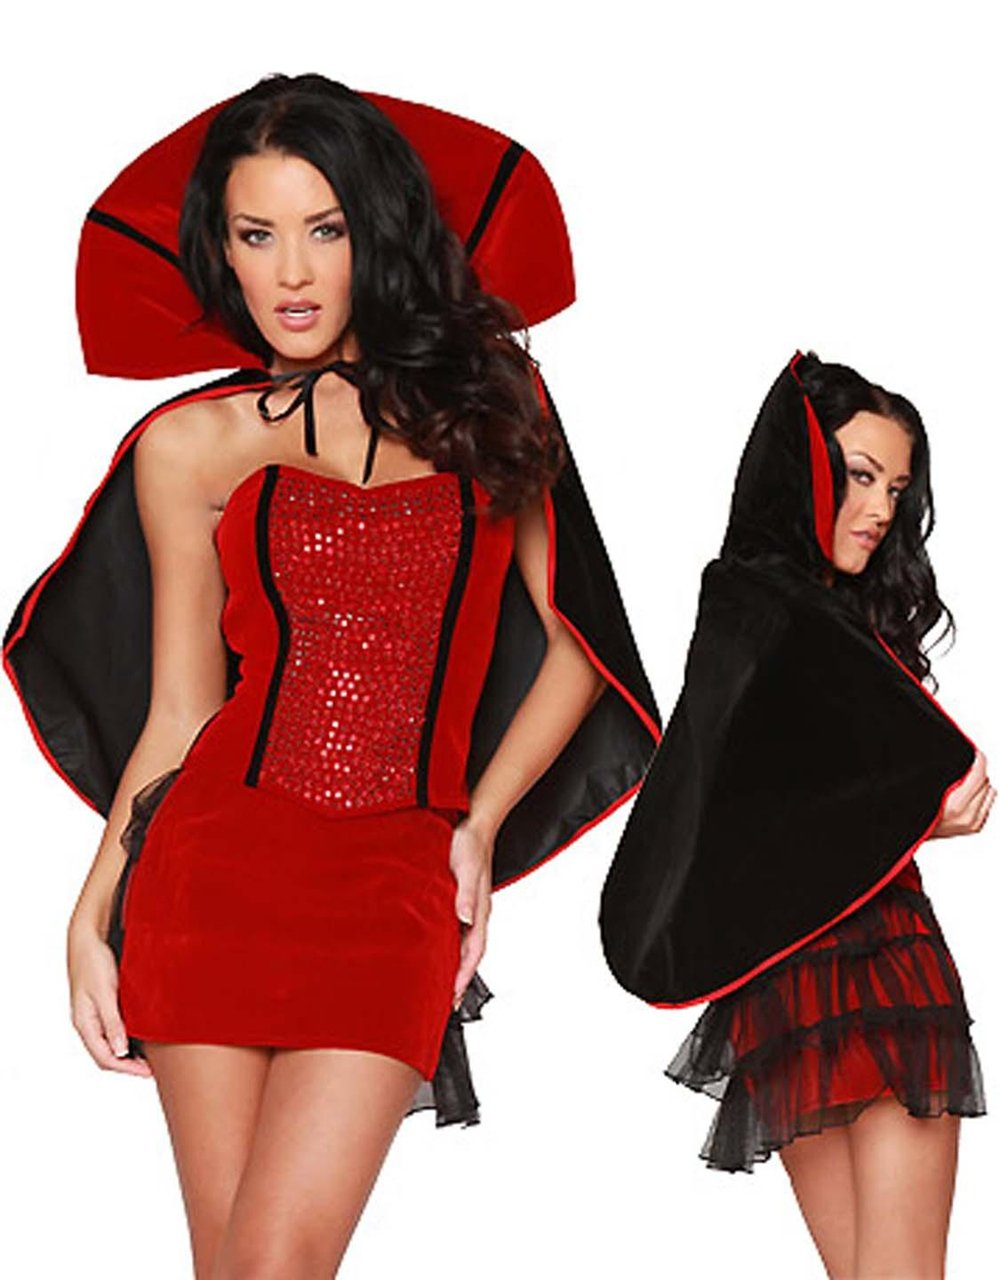 Rhinestone Studded Strapless Corset Sexy Vampire Halloween Costumes Cosplay Outfit W847041